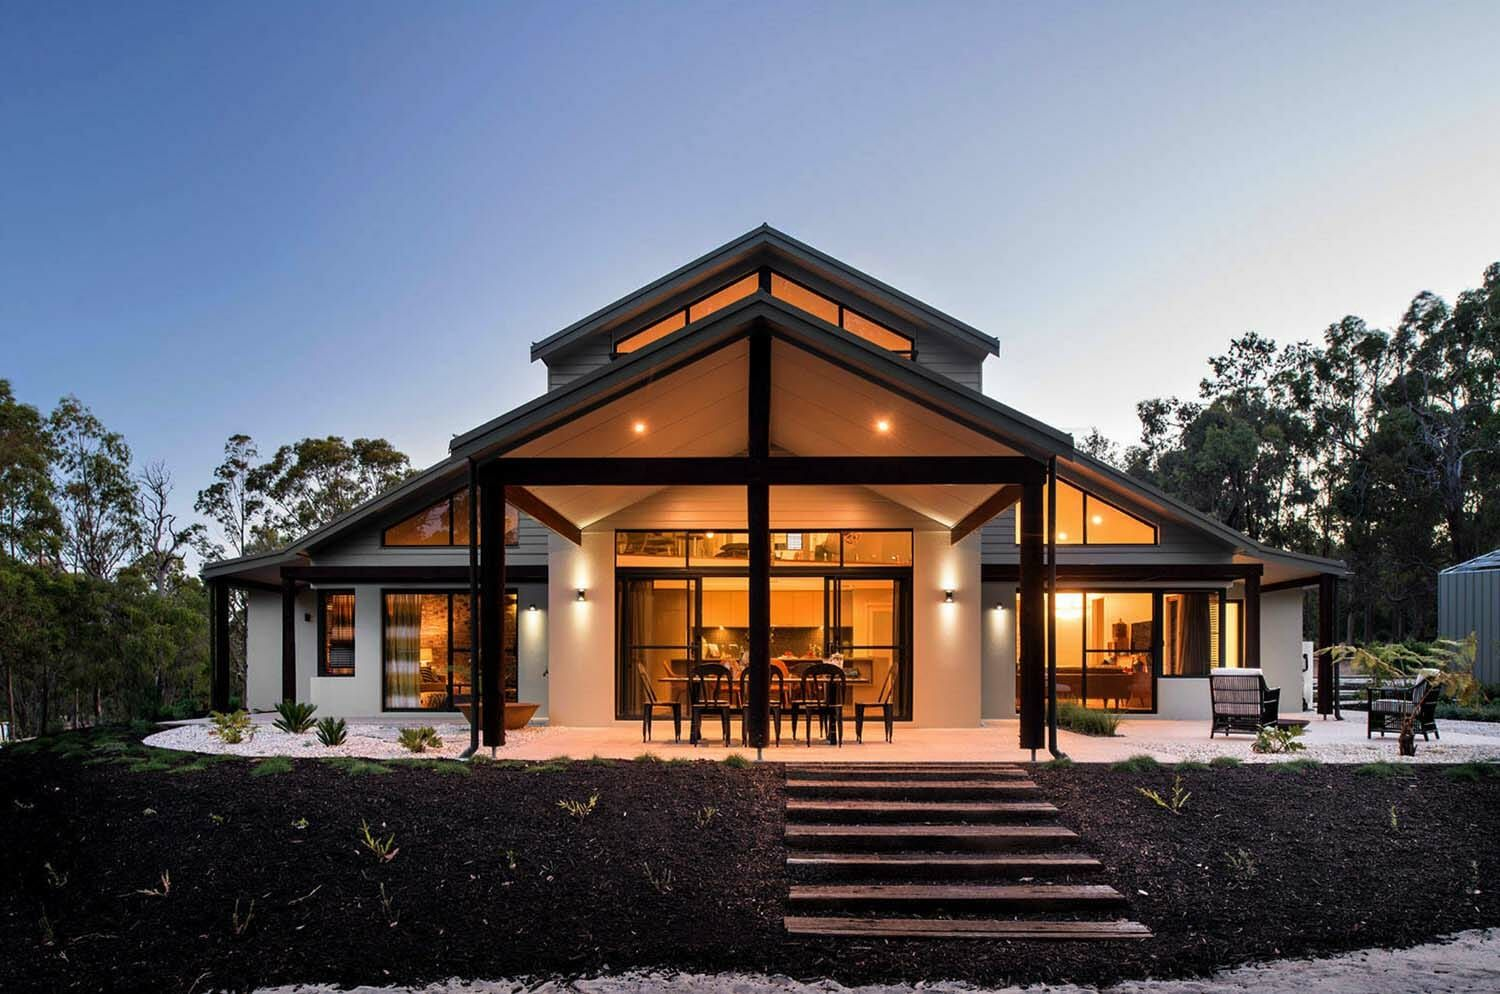 Contemporary Home Design The Rural Building Company 26 1 Kindesign Modern House Exterior Barn Style House Mansion Designs